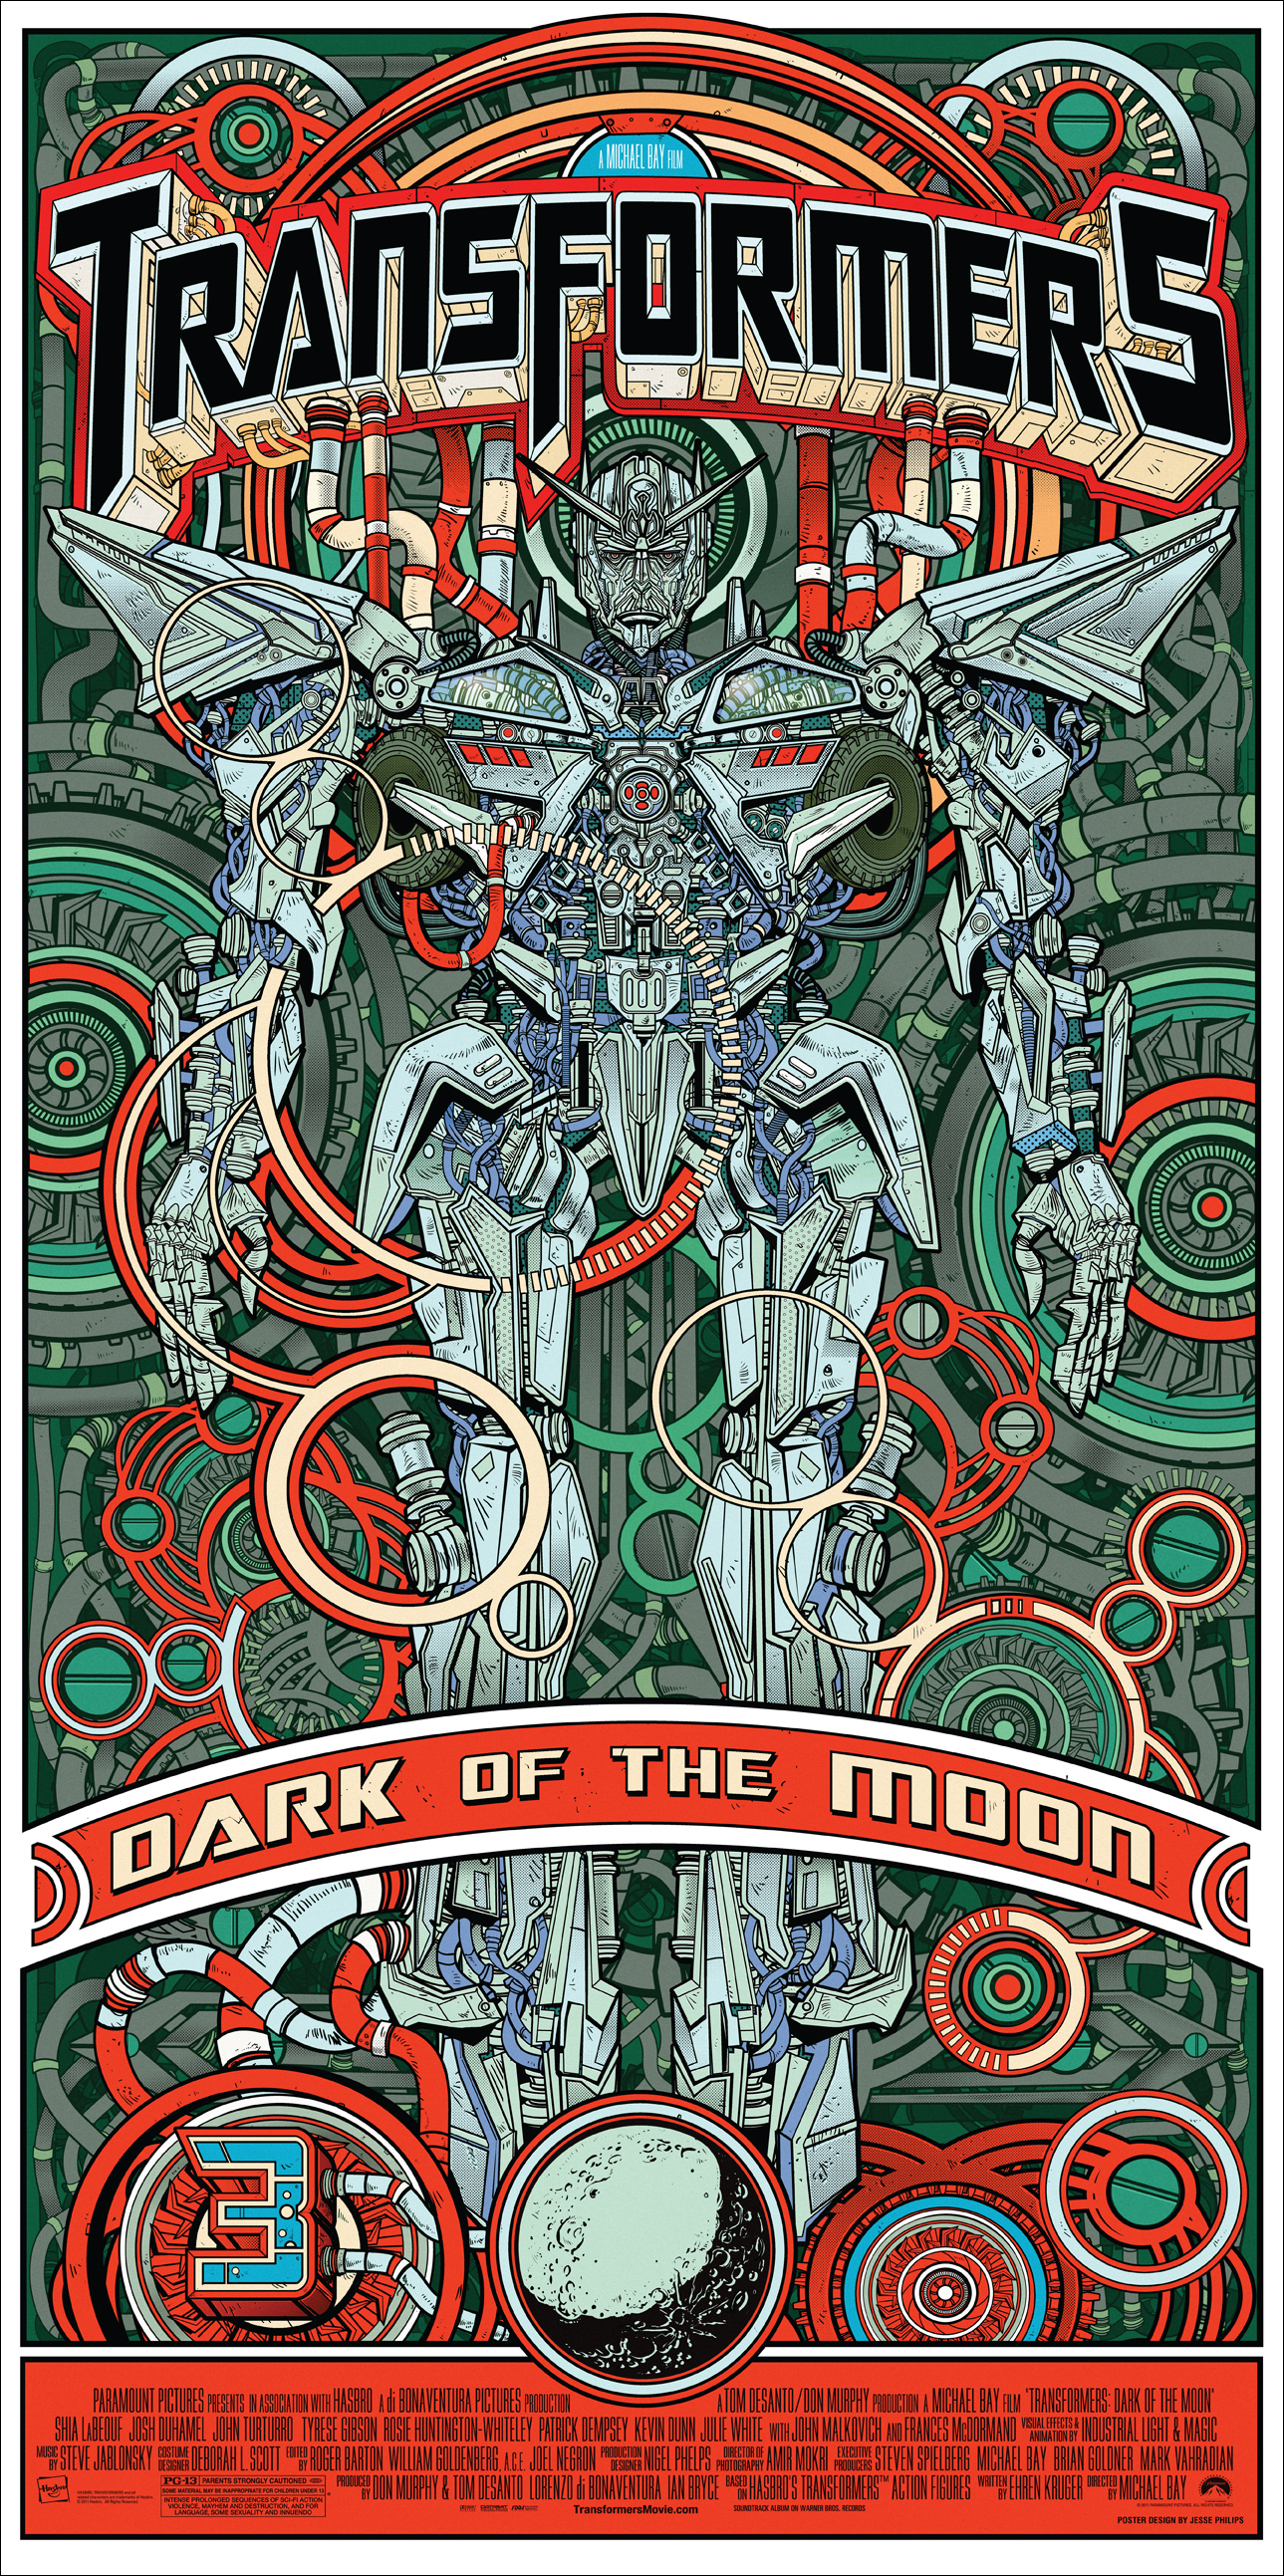 http://collider.com/wp-content/uploads/transformers-dark-of-the-moon-green-final-mondo-poster.jpg